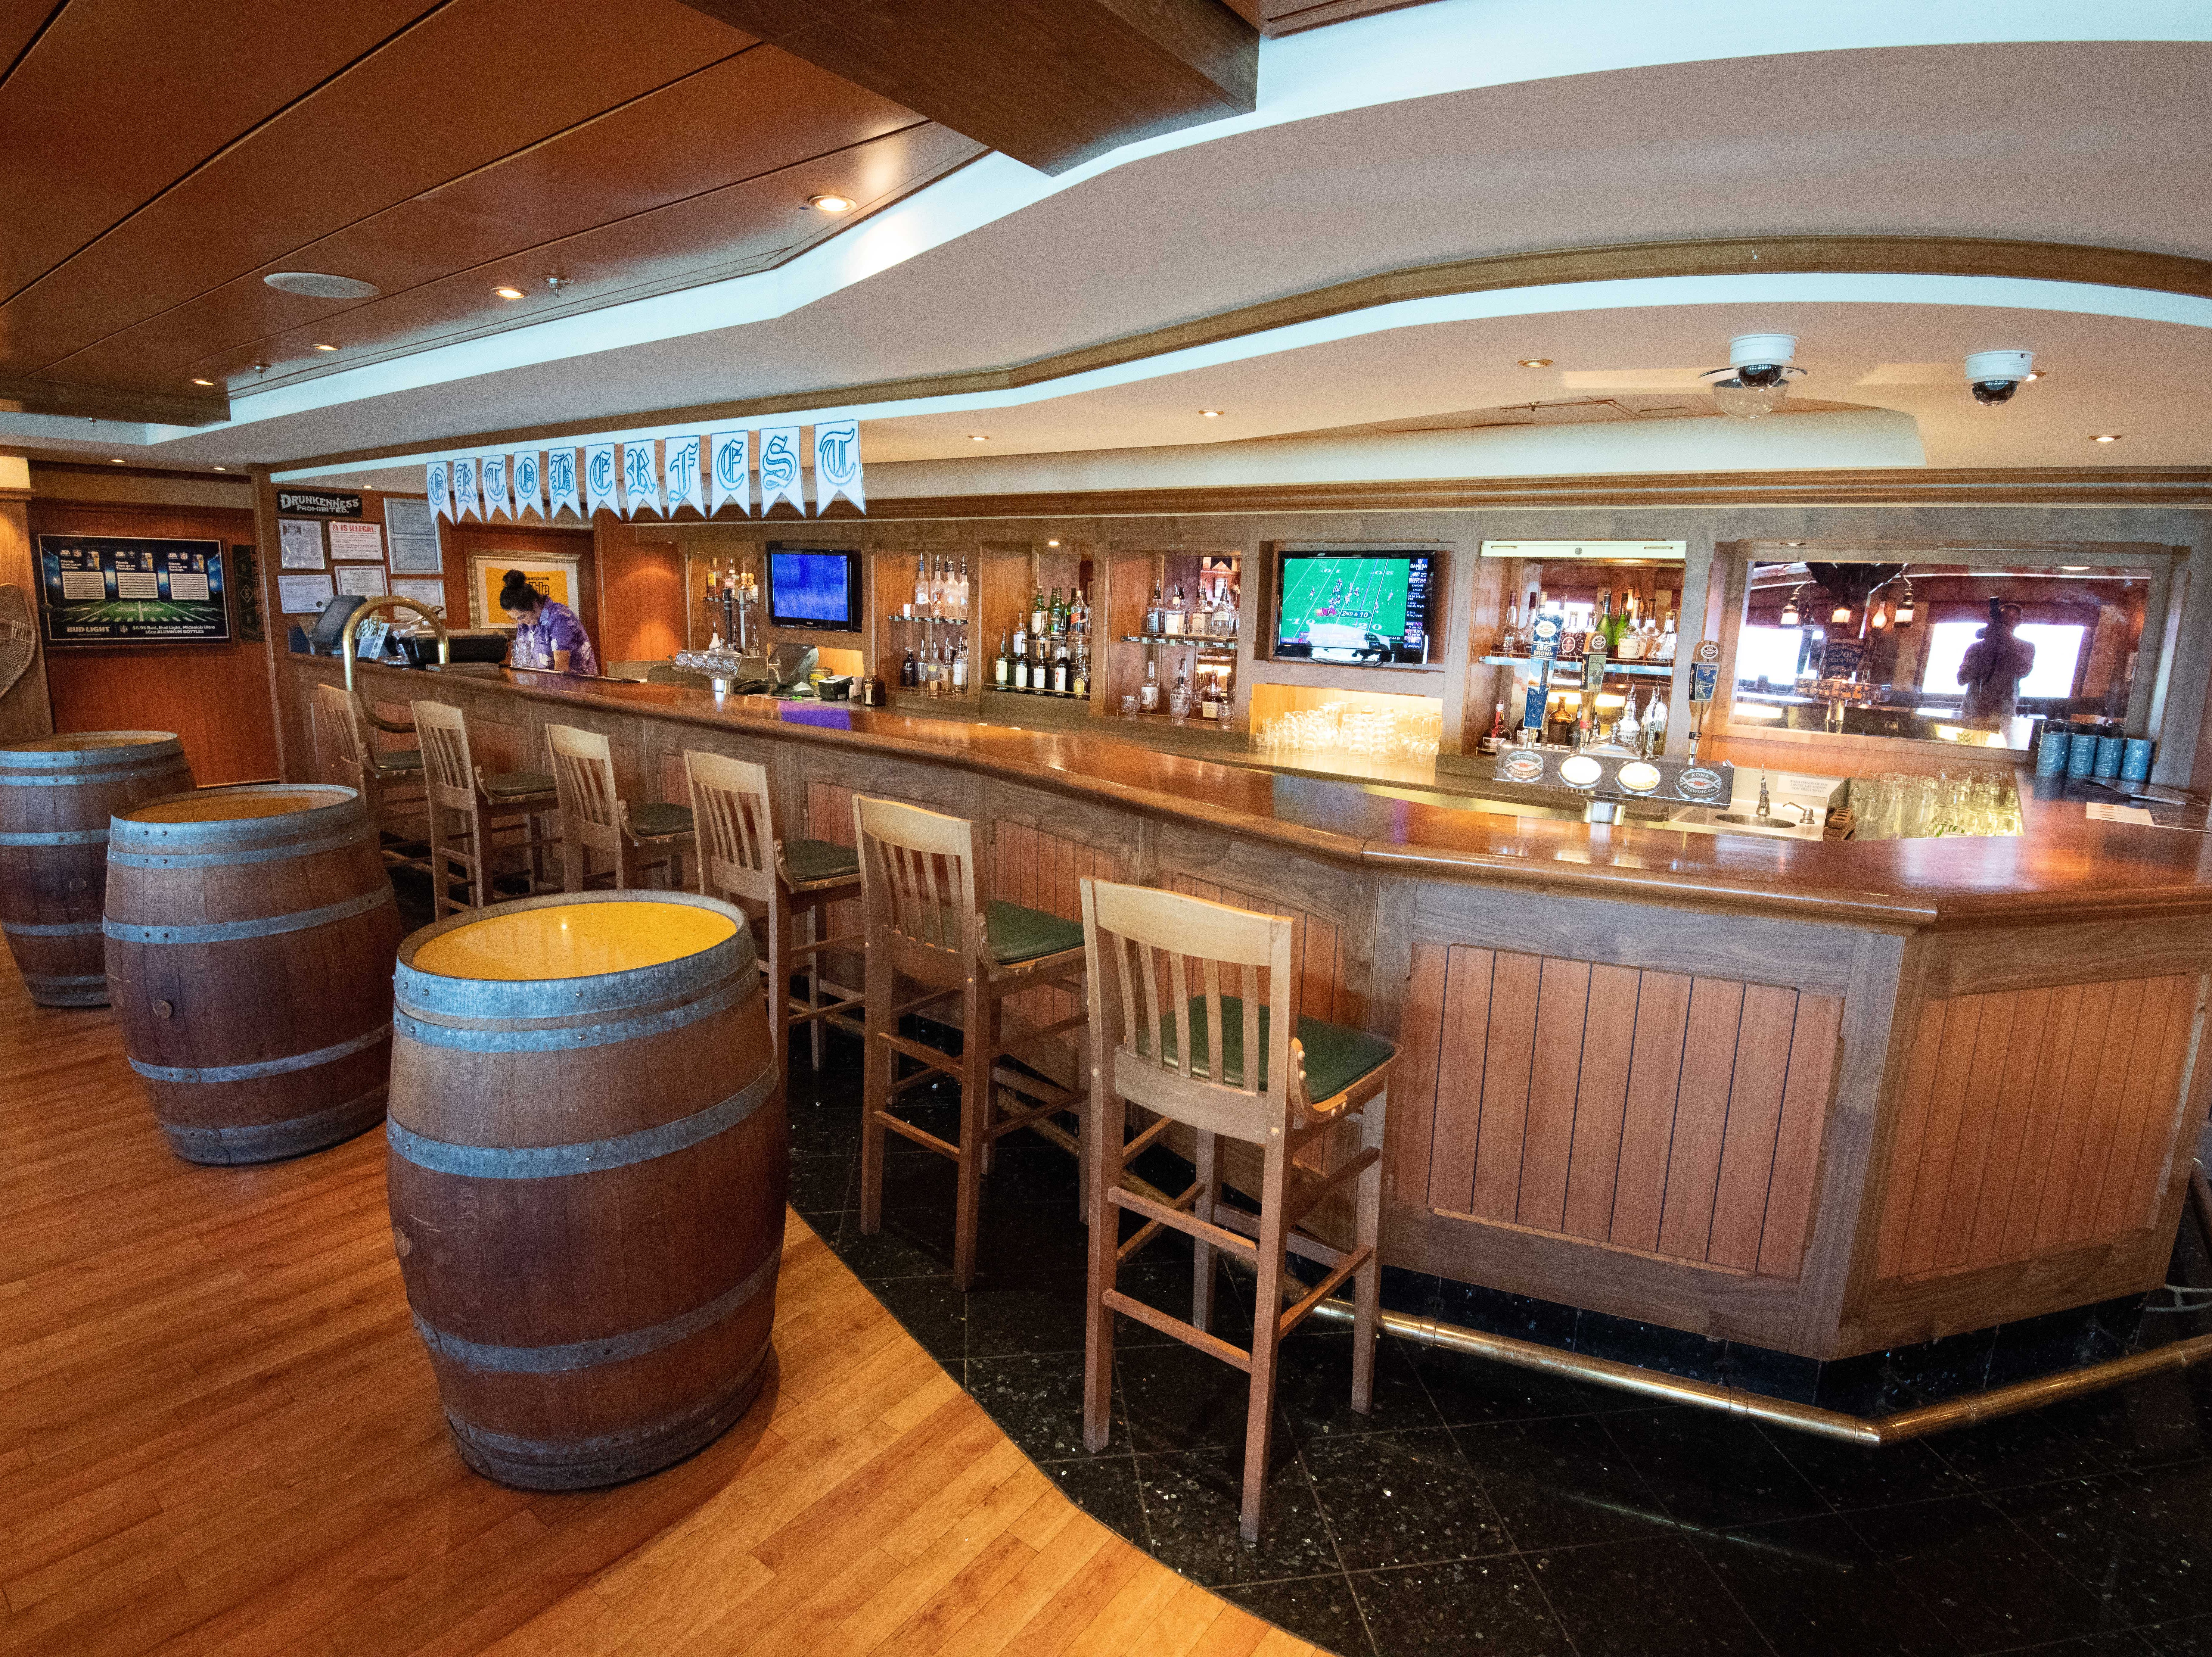 The Gold Rush Saloon, on Deck 11, is a 102-seat, Western-style pub themed around the Alaska Gold Rush that began in 1849.